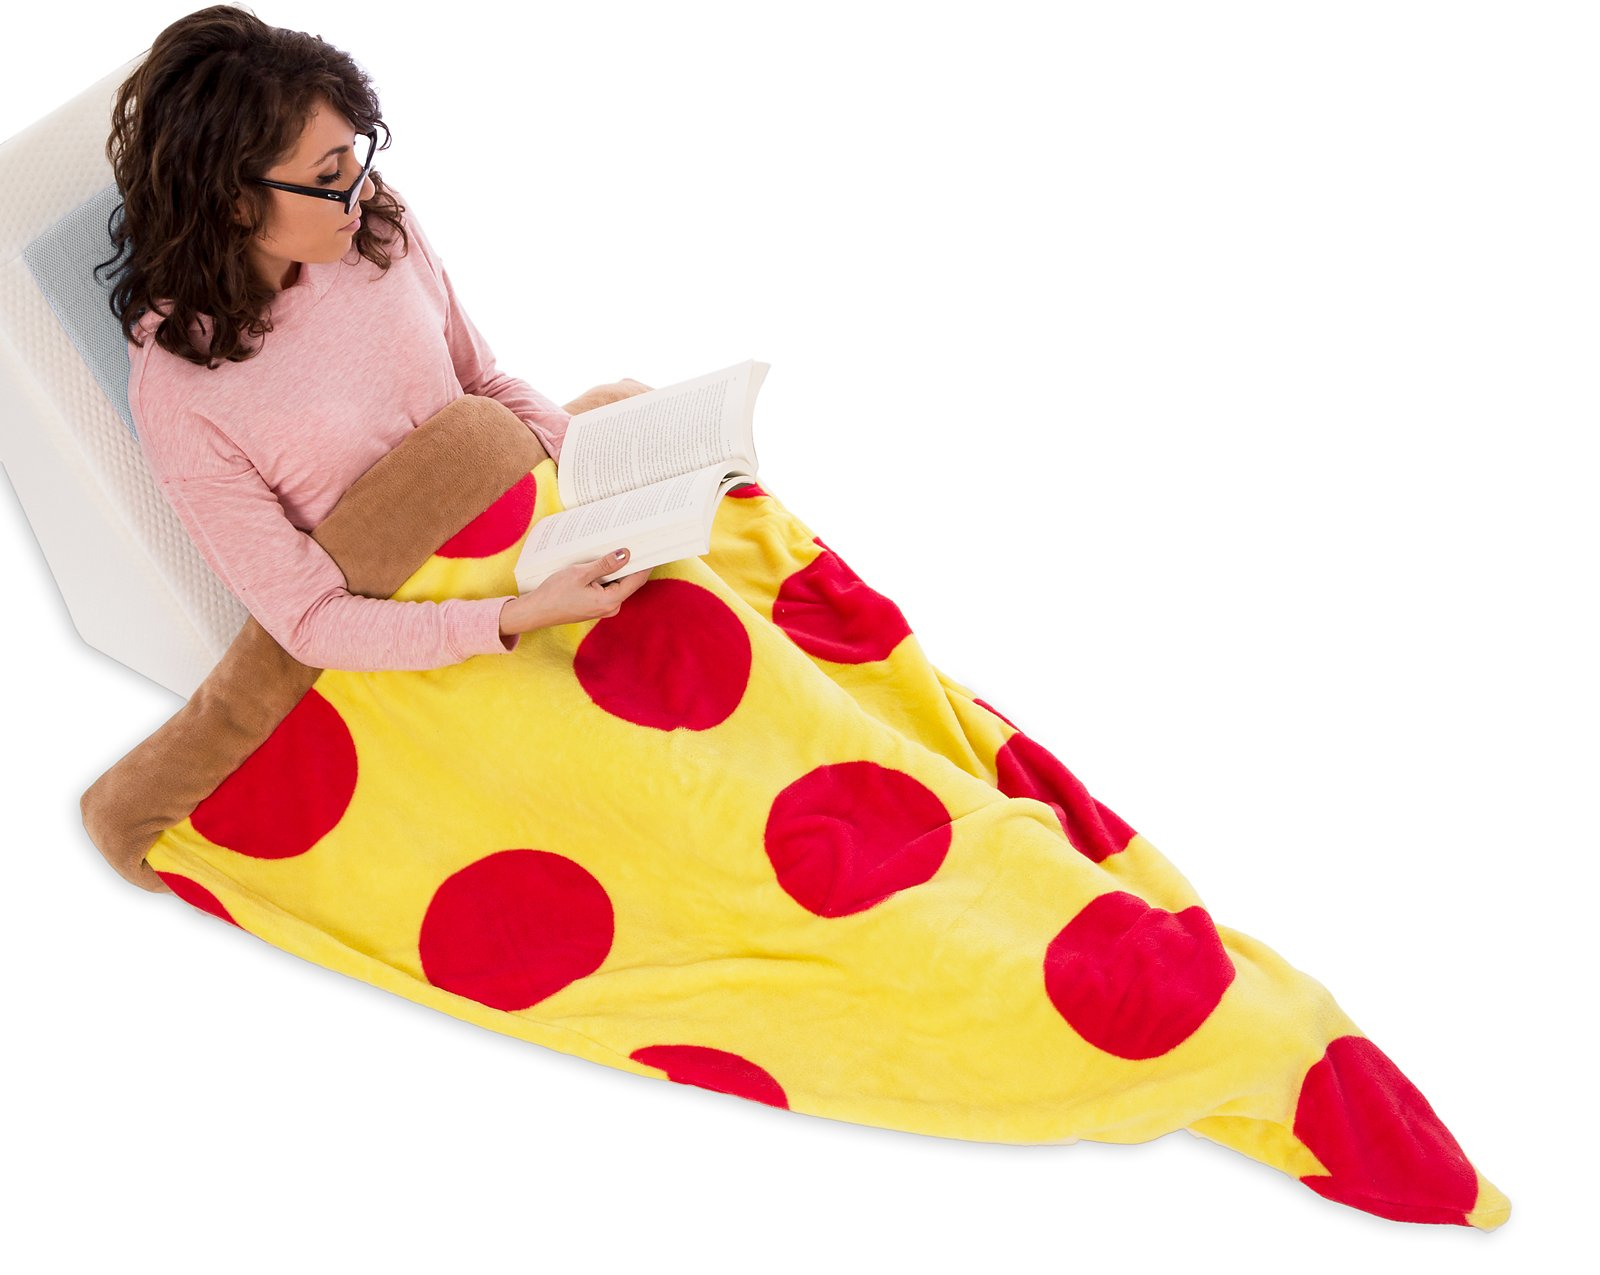 Silver Lilly Pizza Sleeping Bag - Plush Fleece Giant Pizza Slice Blanket for Kids and Adults by (Adult) by Silver Lilly (Image #3)